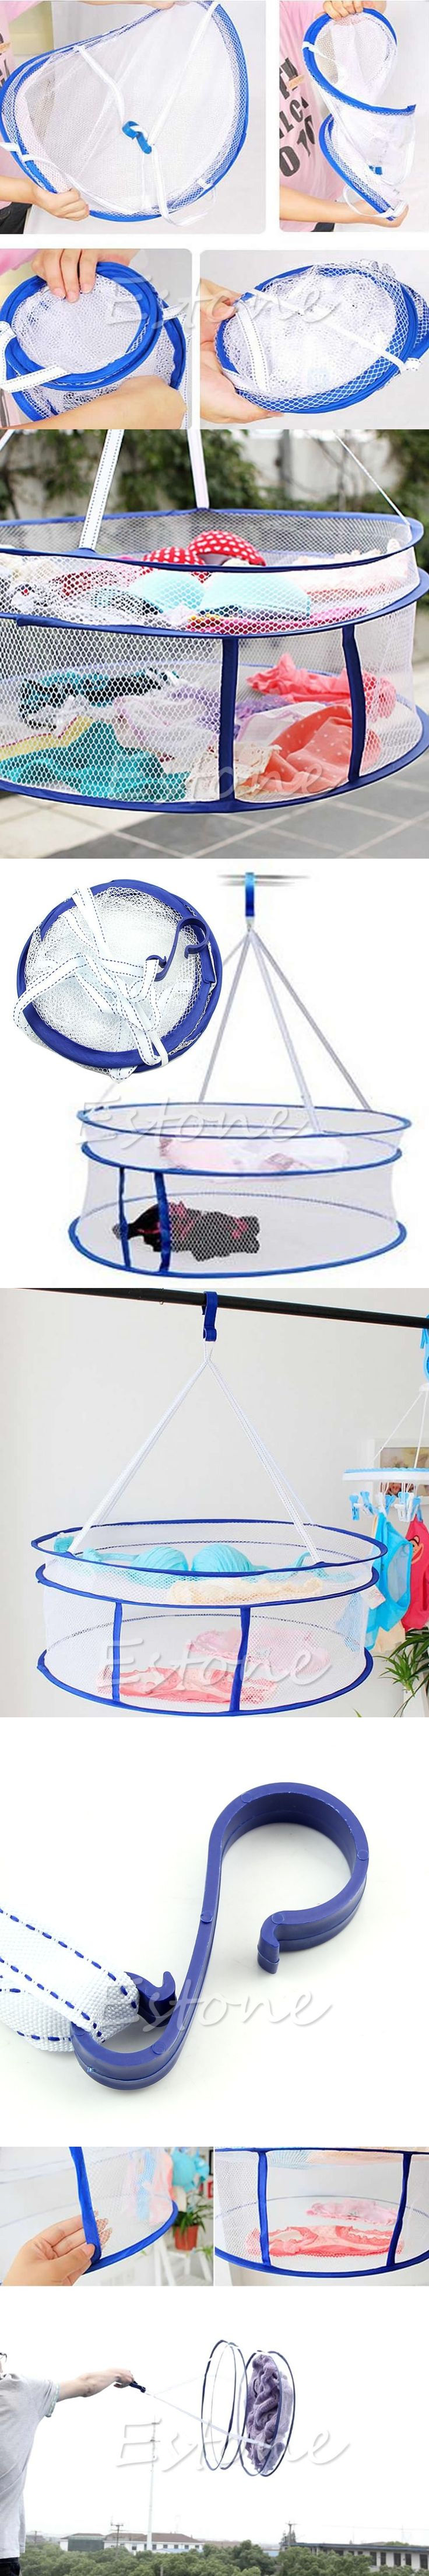 Drying Rack Folding Hanging Clothes Laundry Sweater Basket Dryer 2 Layers Net Washing Basket Dirty Clothes Sundries Basket Box